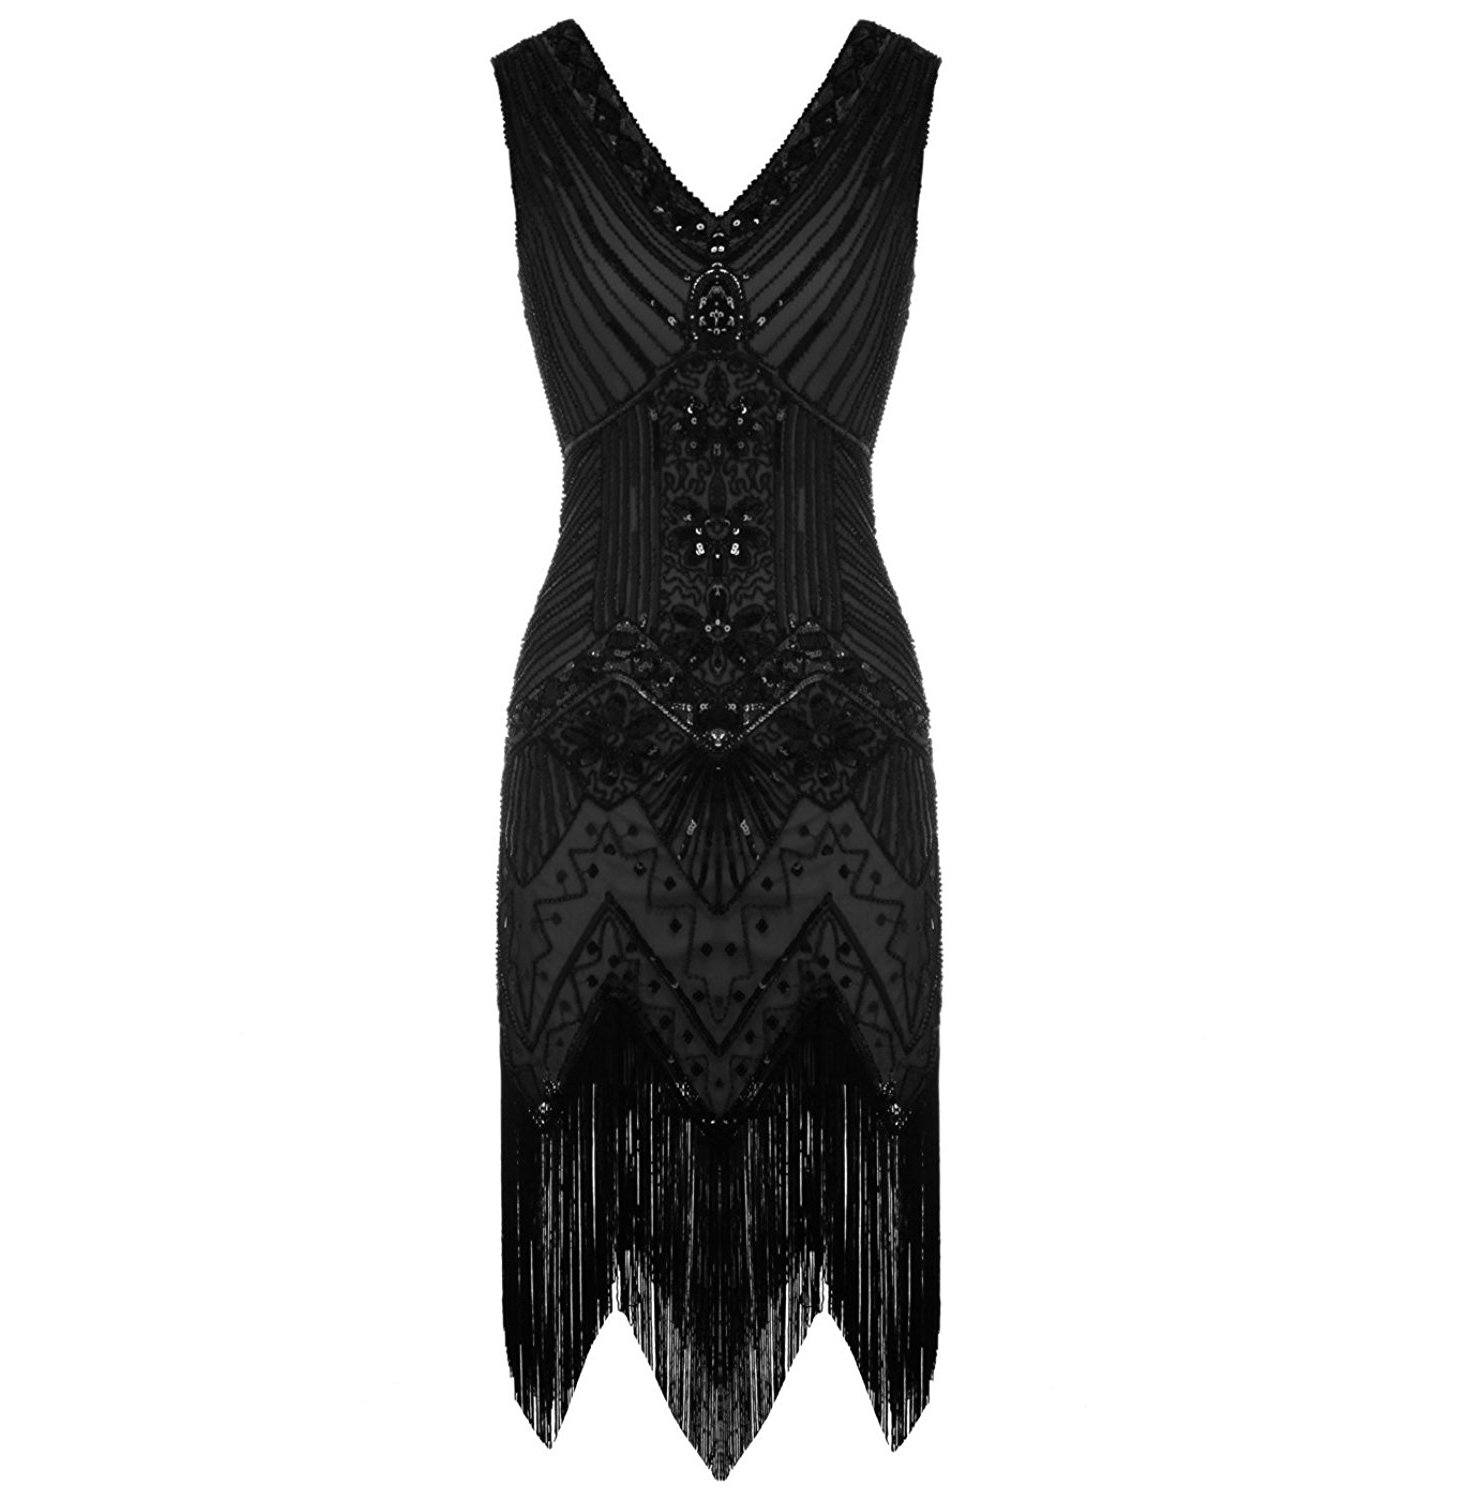 Black Vintage Gatsby Dress Beaded Fringed 1920s Evening Party